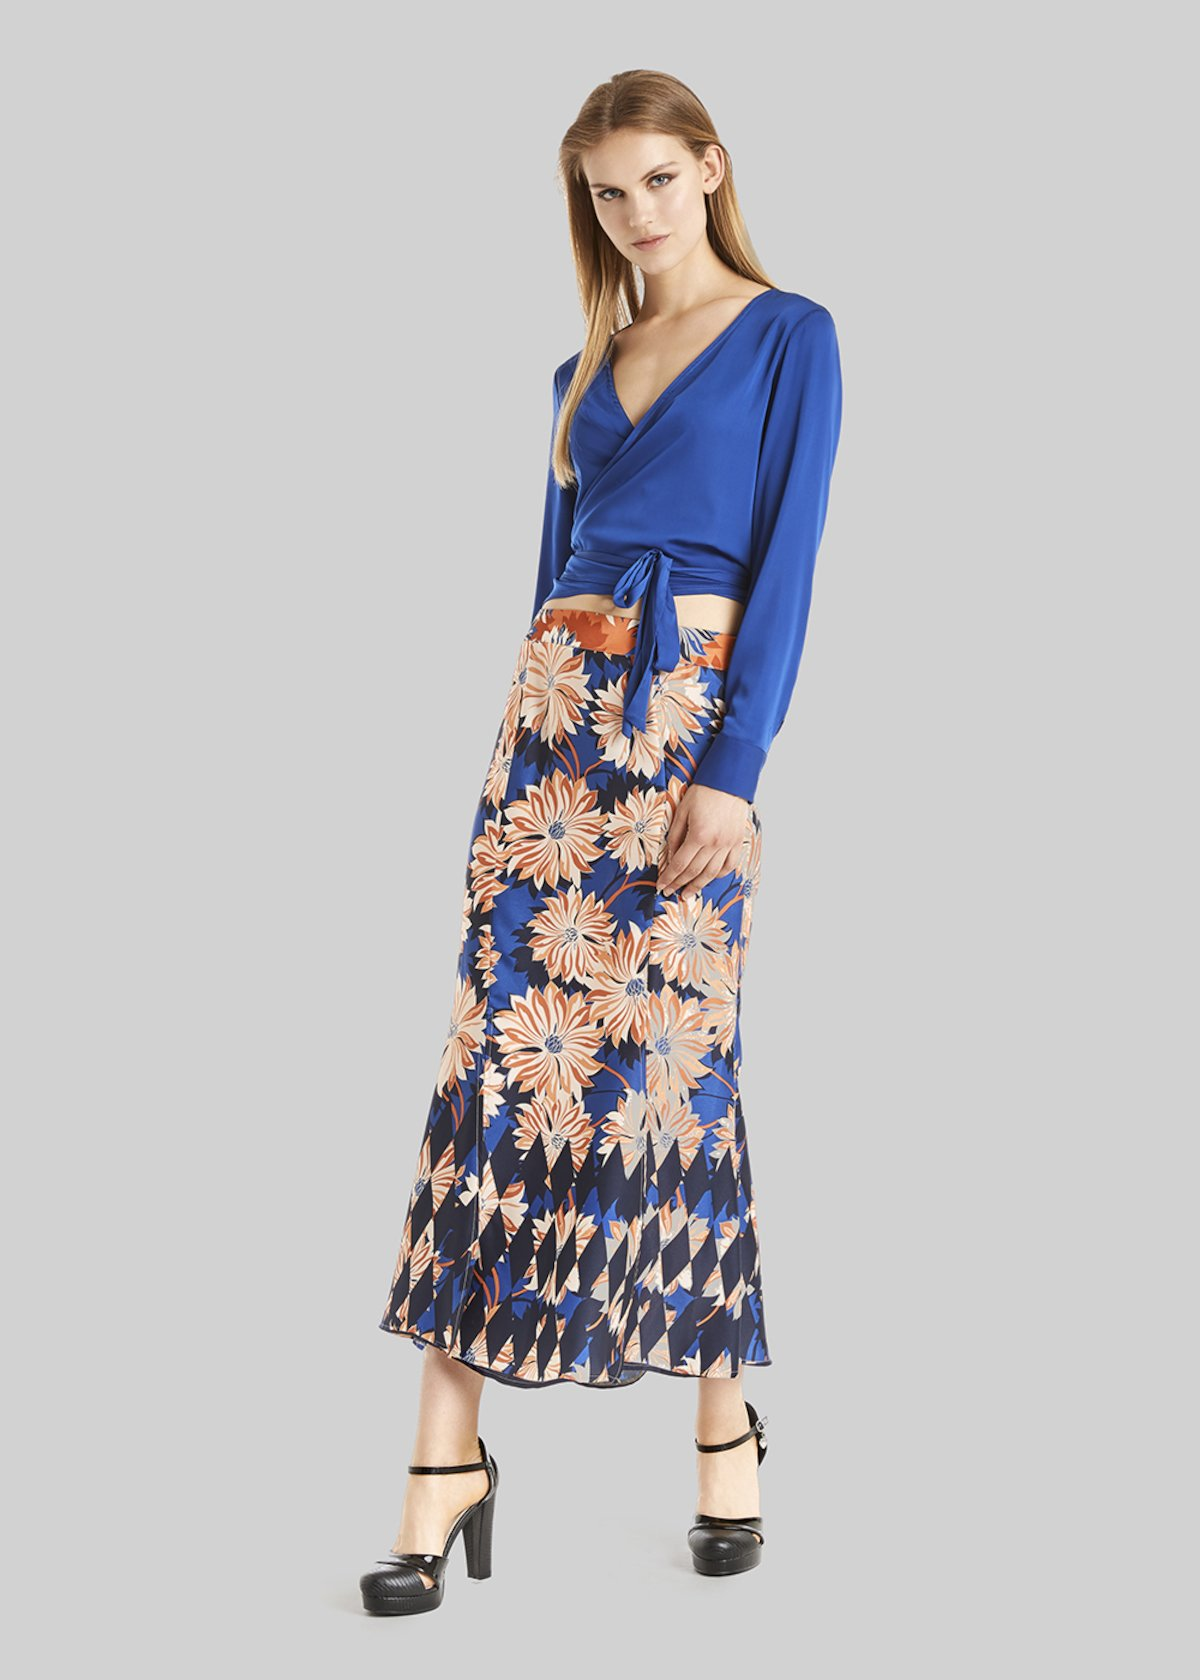 Gemma long skirt floral fantasy - Lobster / Lapis Fantasia - Woman - Category image